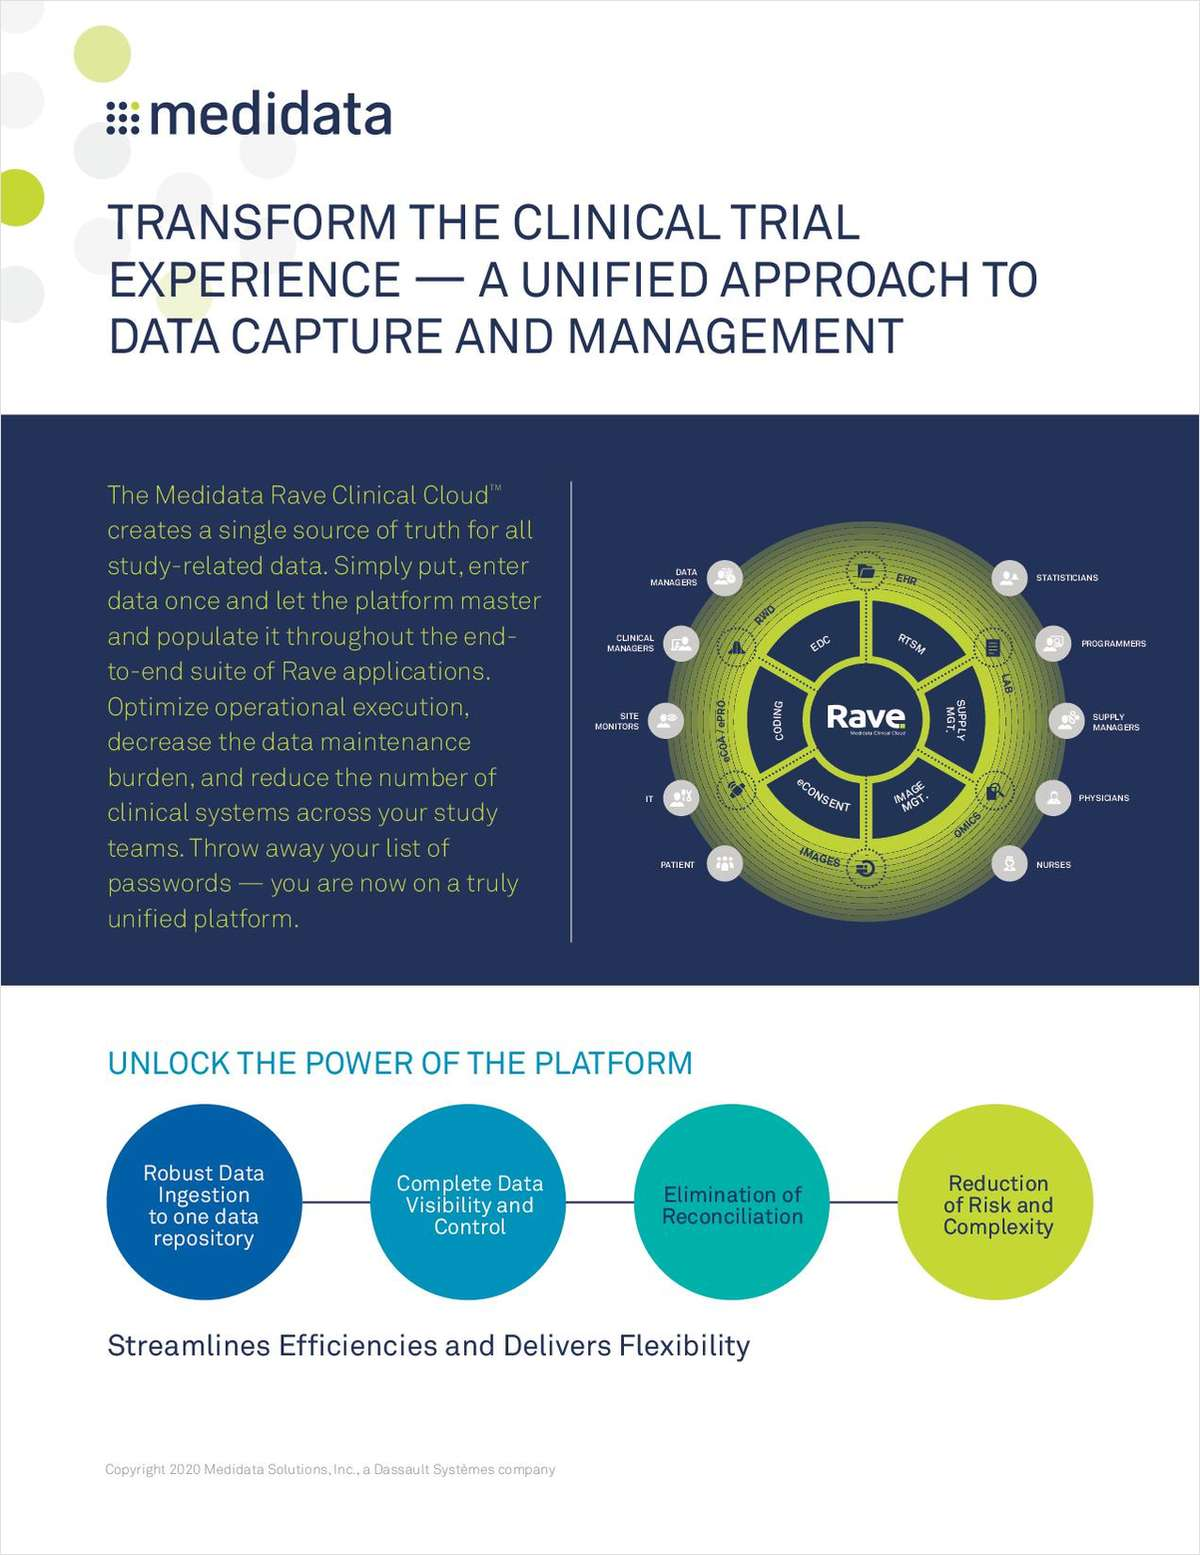 Transform the Clinical Trial Experience with a Unified Approach to CDCM